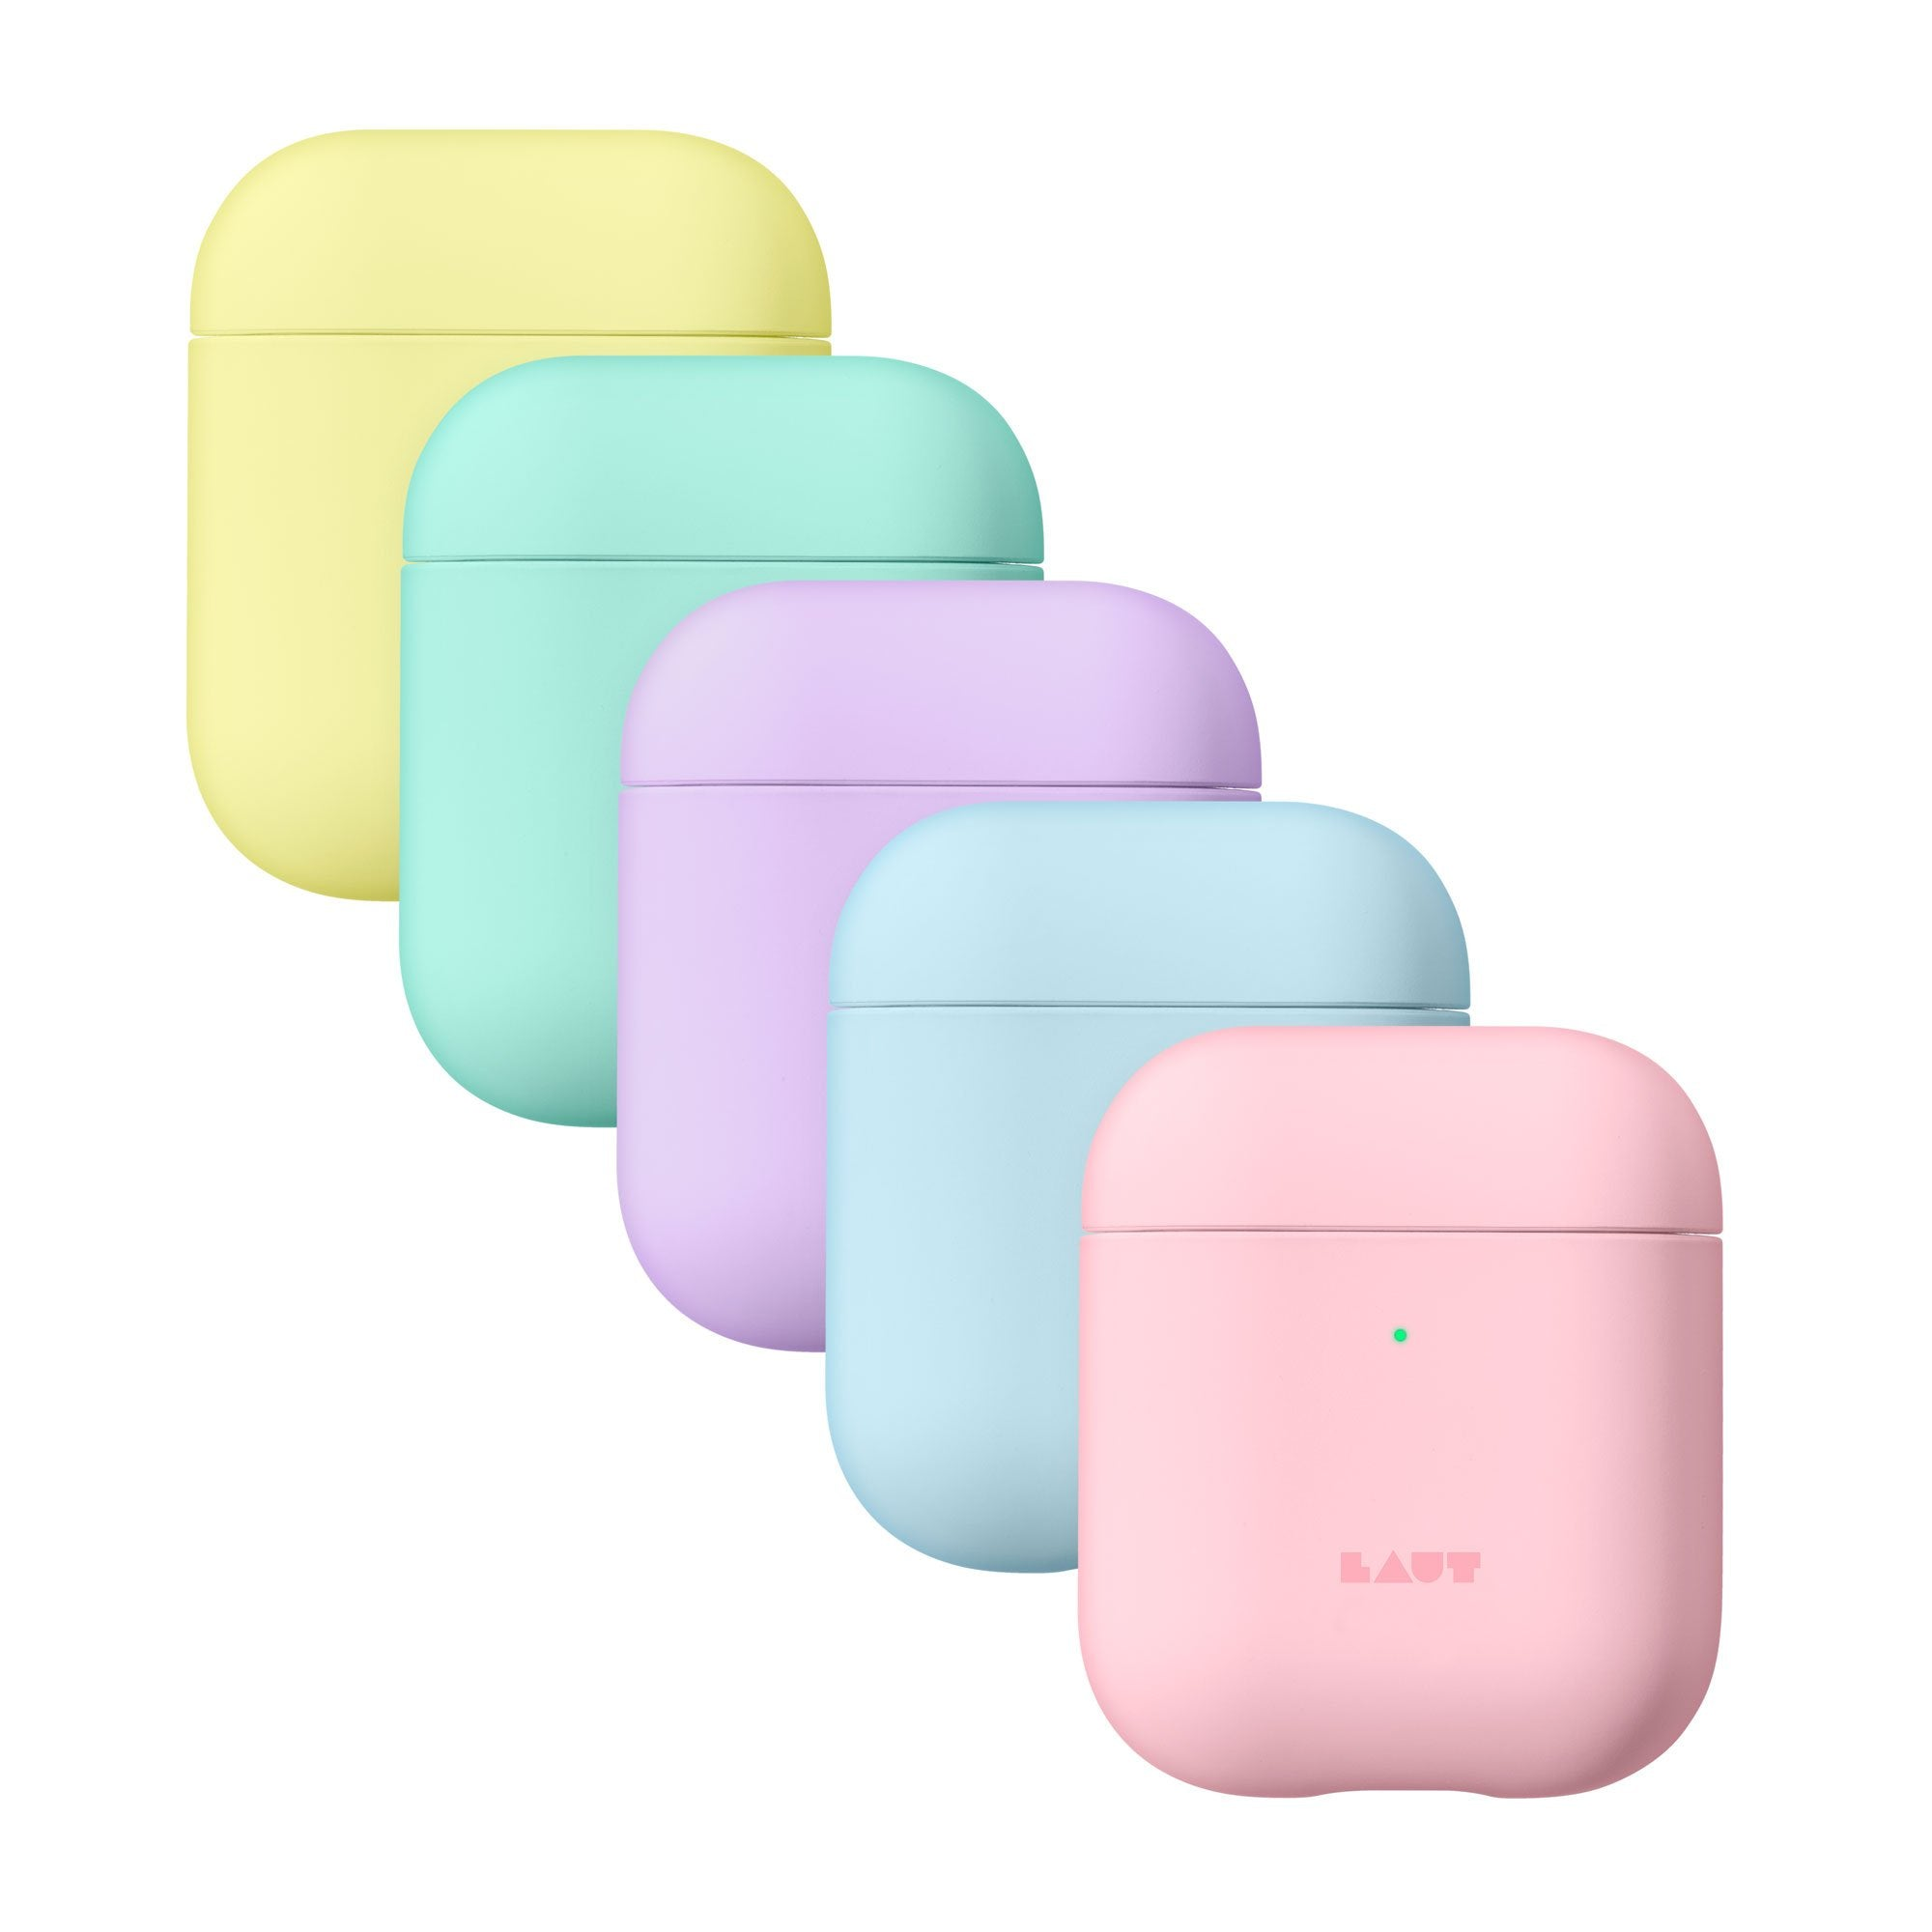 LAUT-HUEX PASTELS for AirPods-Case-AirPods